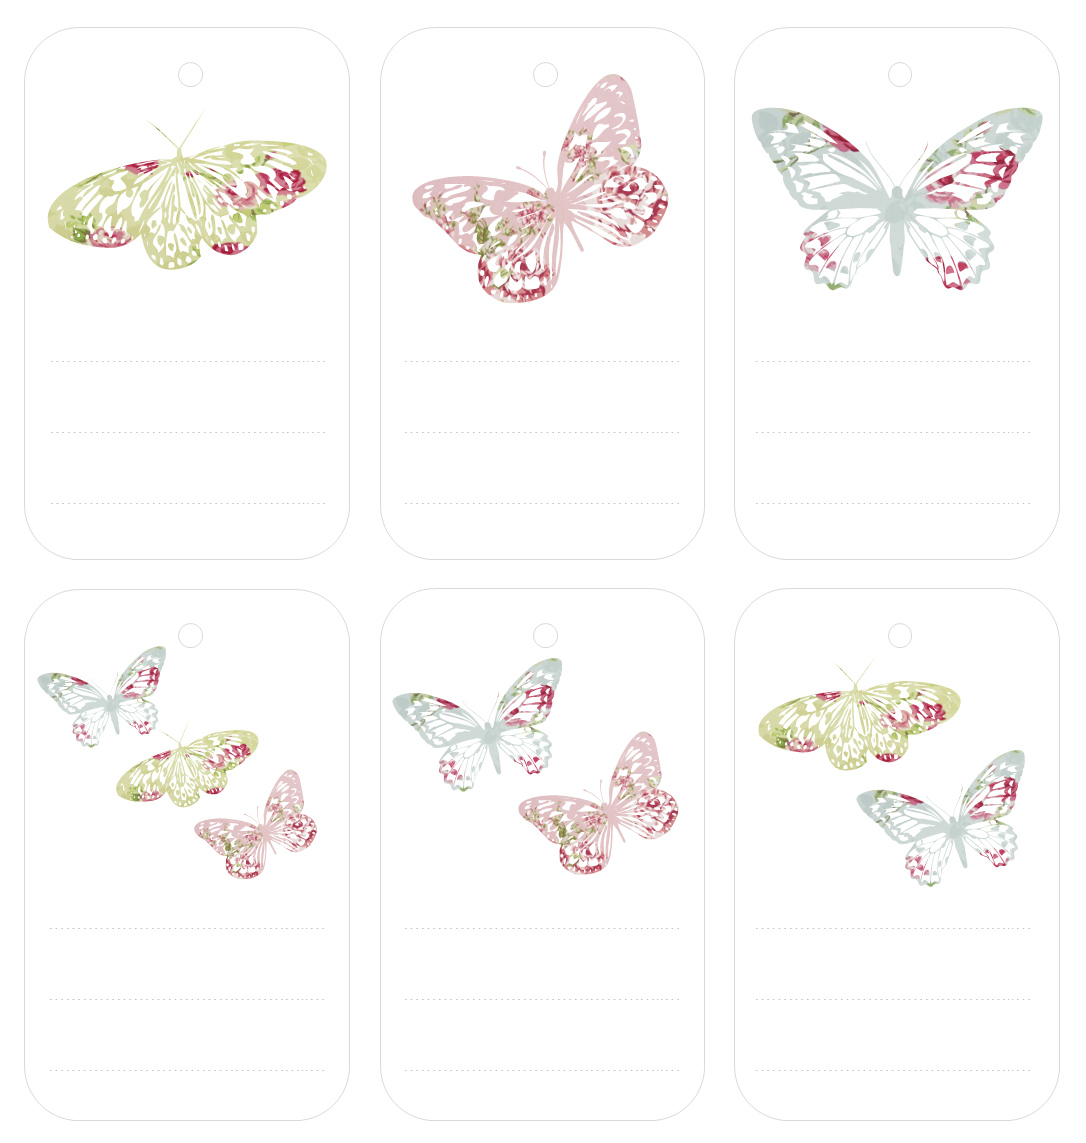 More Vintage Butterfly Freebies